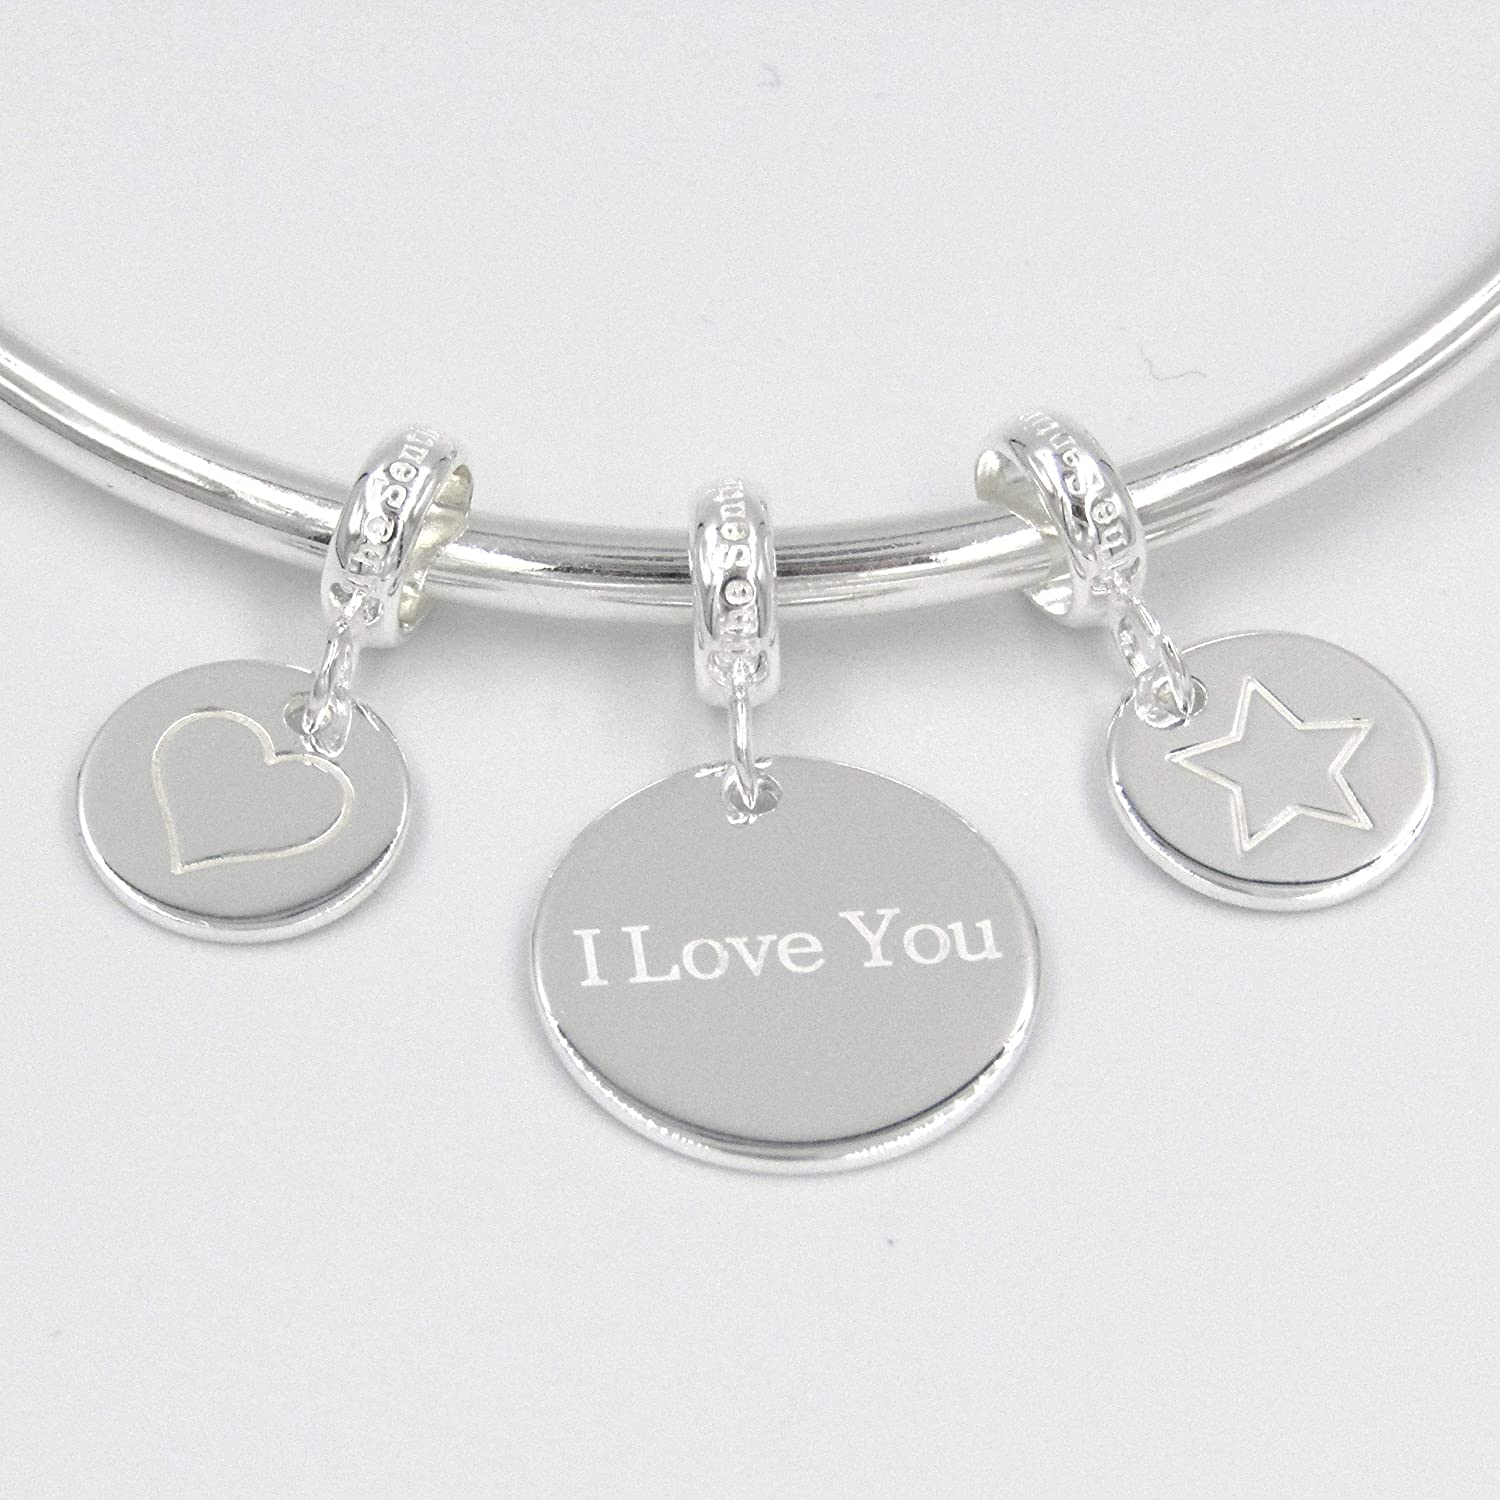 Plated Laugh Smile Quote Best Friend Gift Bead 0189 Soul Sister Pendant Charm Silver 925